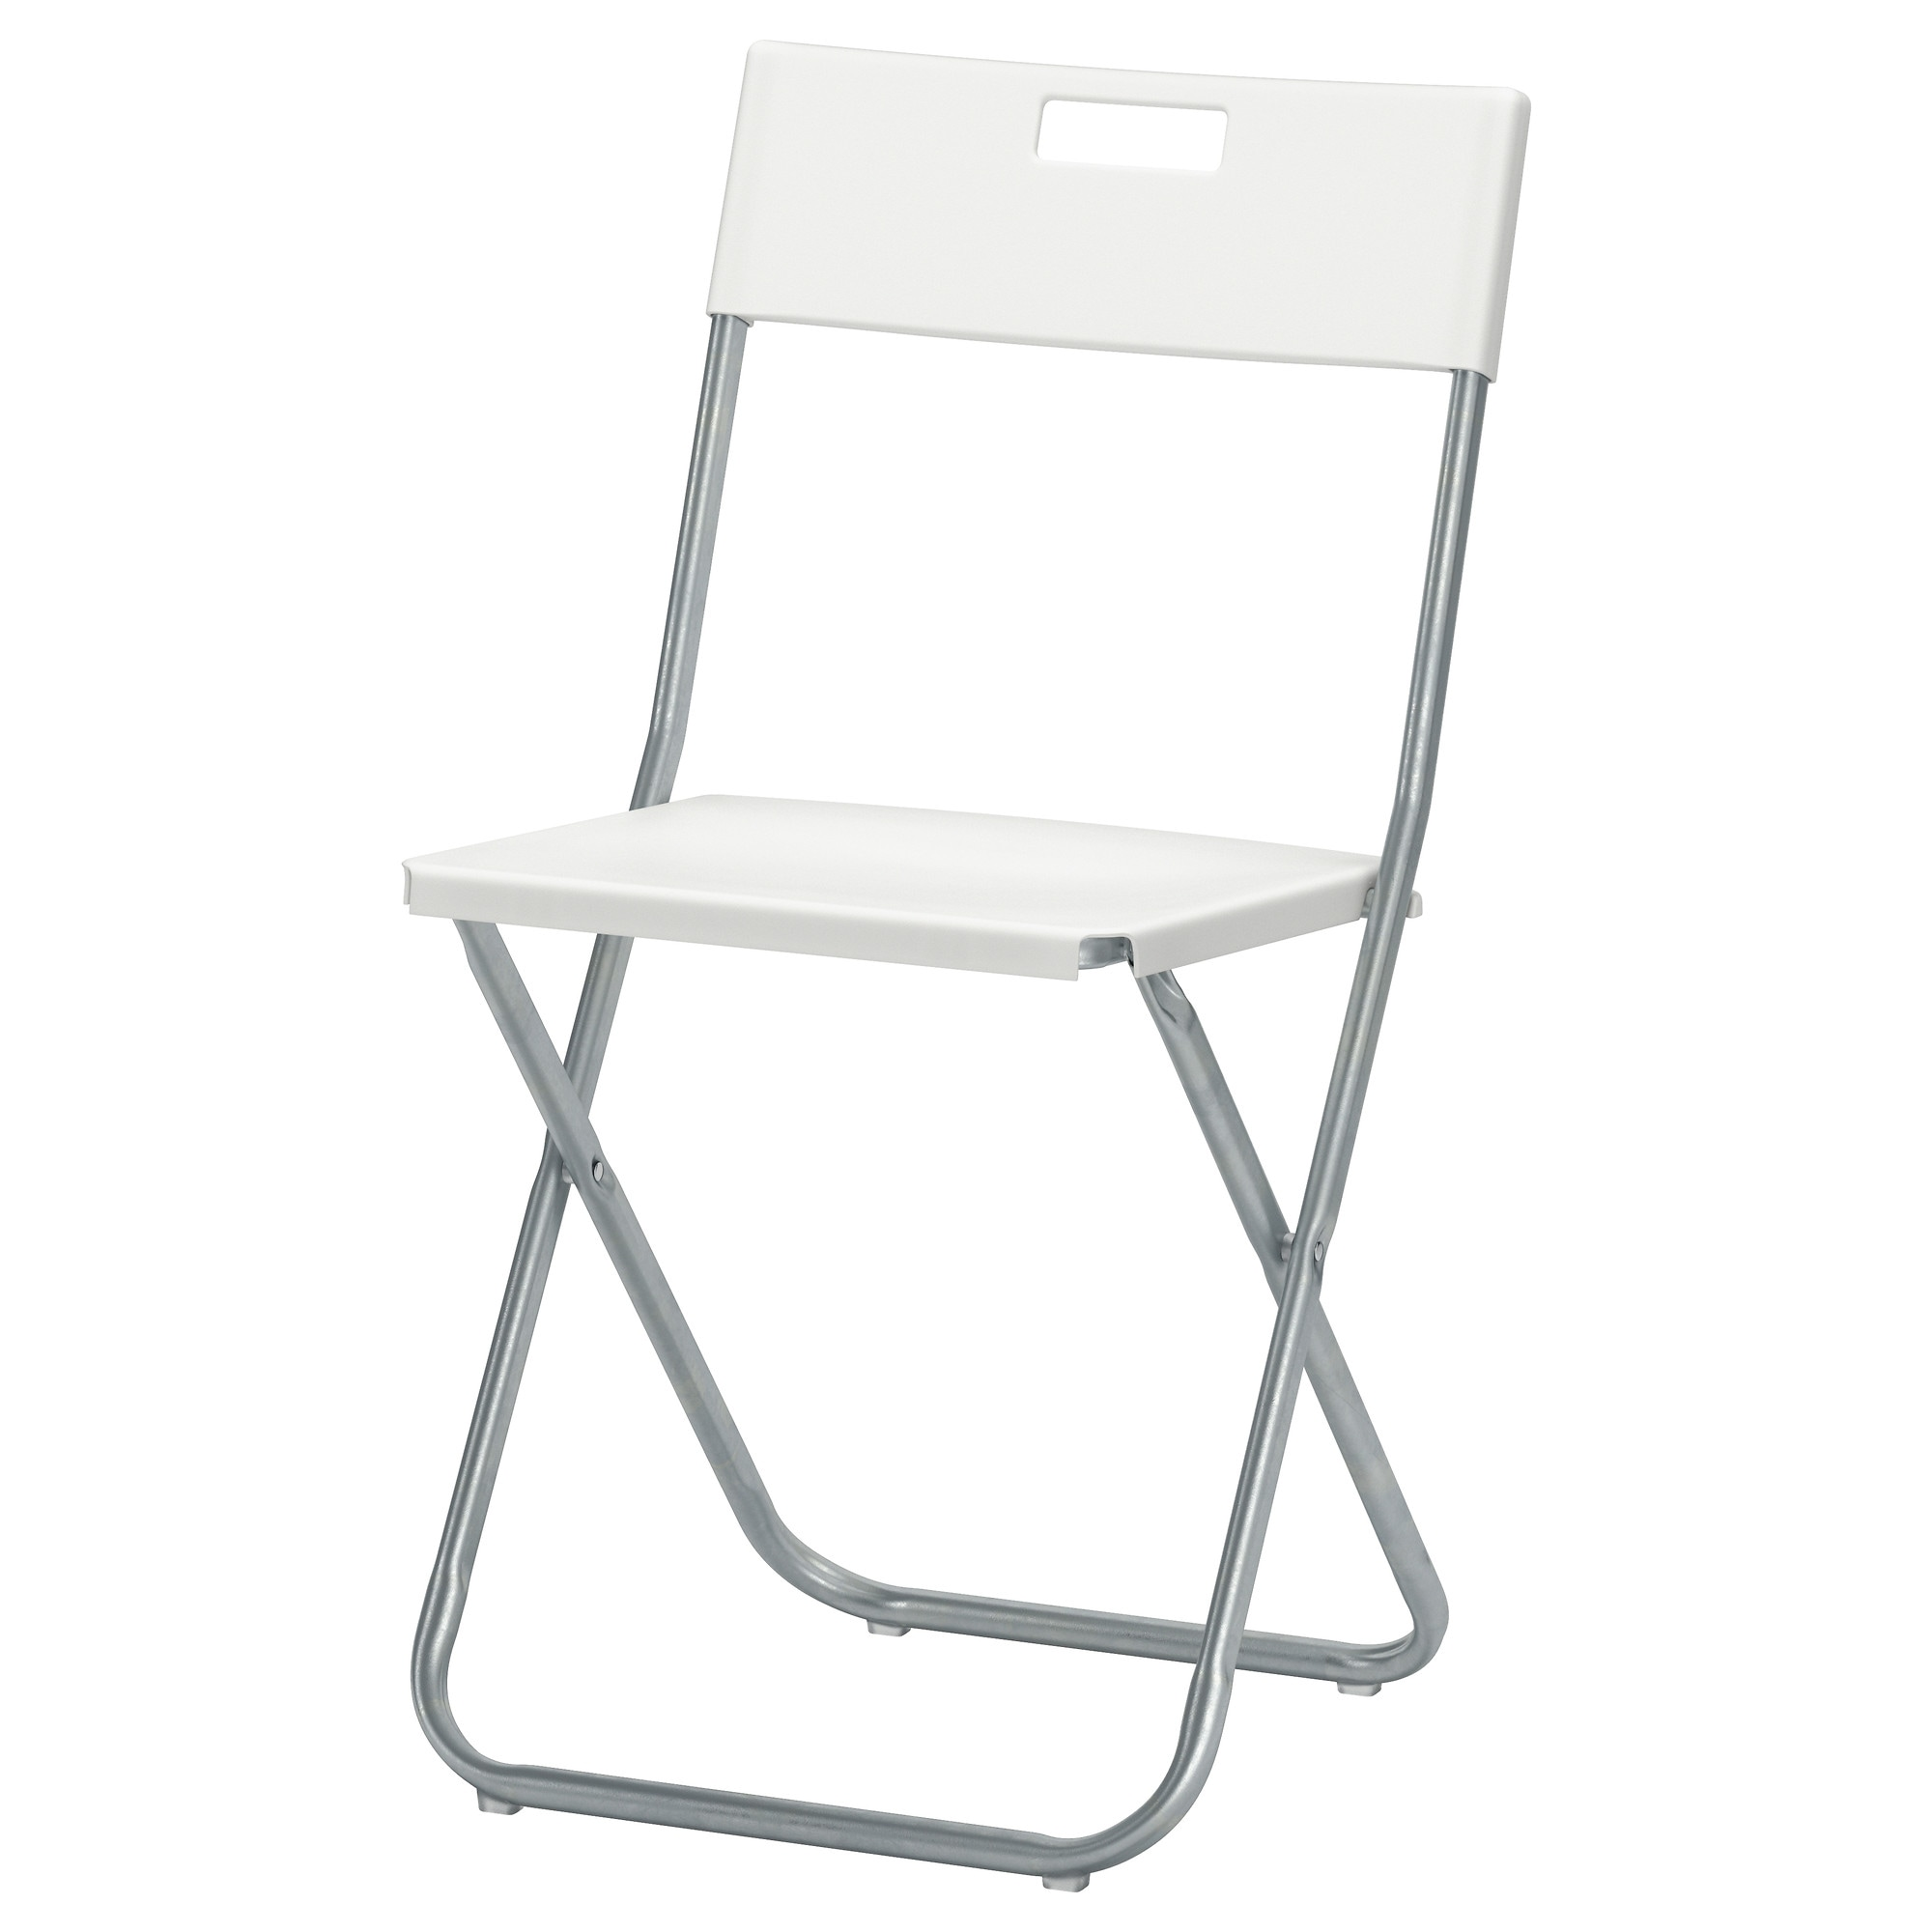 High Quality GUNDE Folding Chair   IKEA